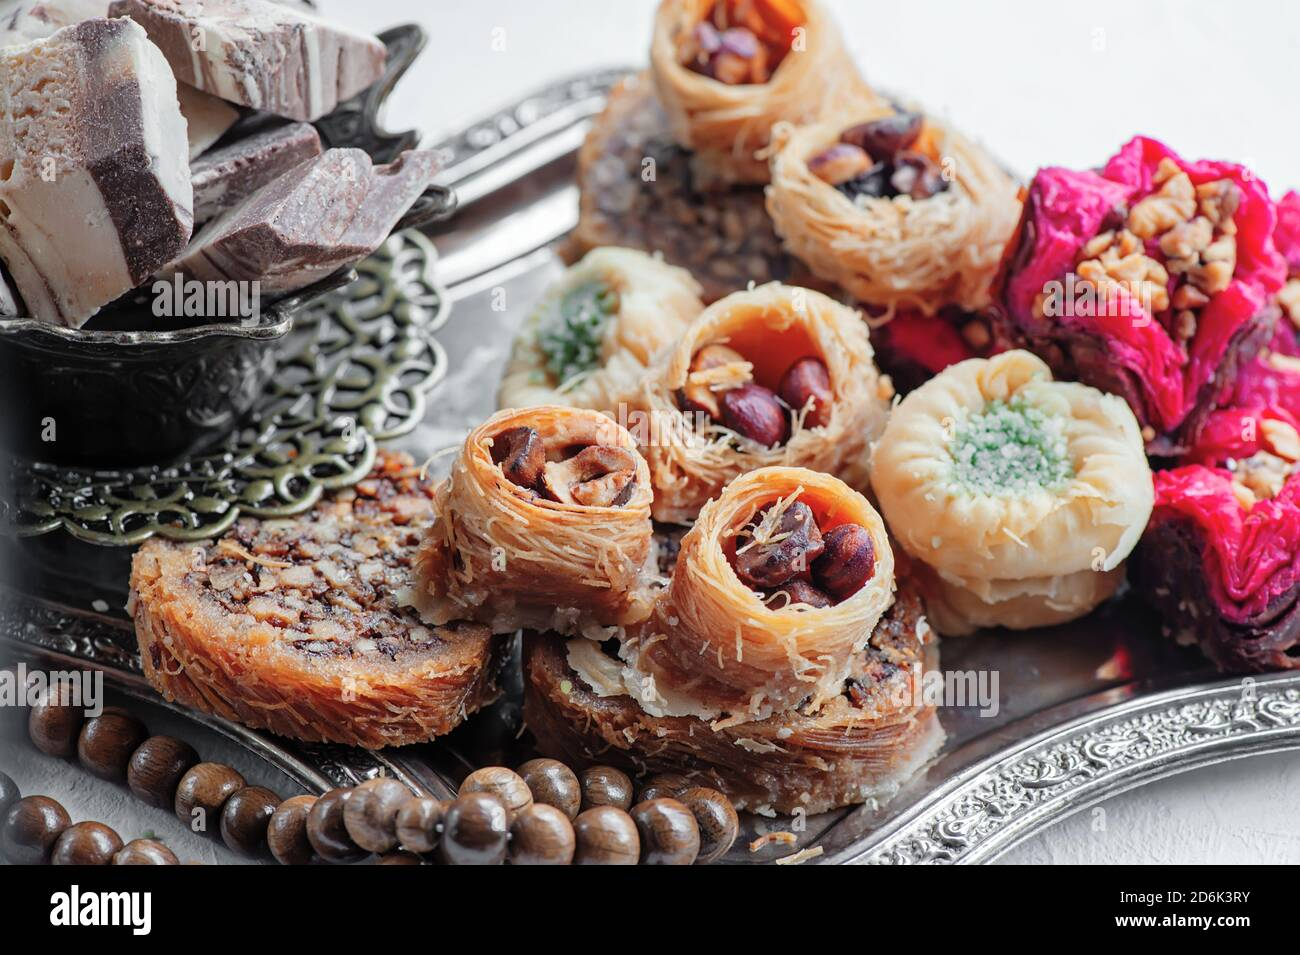 Arabic, Lebanese and Turkish sweets kataifi and kanafeh, a Traditional Eastern dessert made of thin dough with syrup , nuts and seeds. Close up Stock Photo